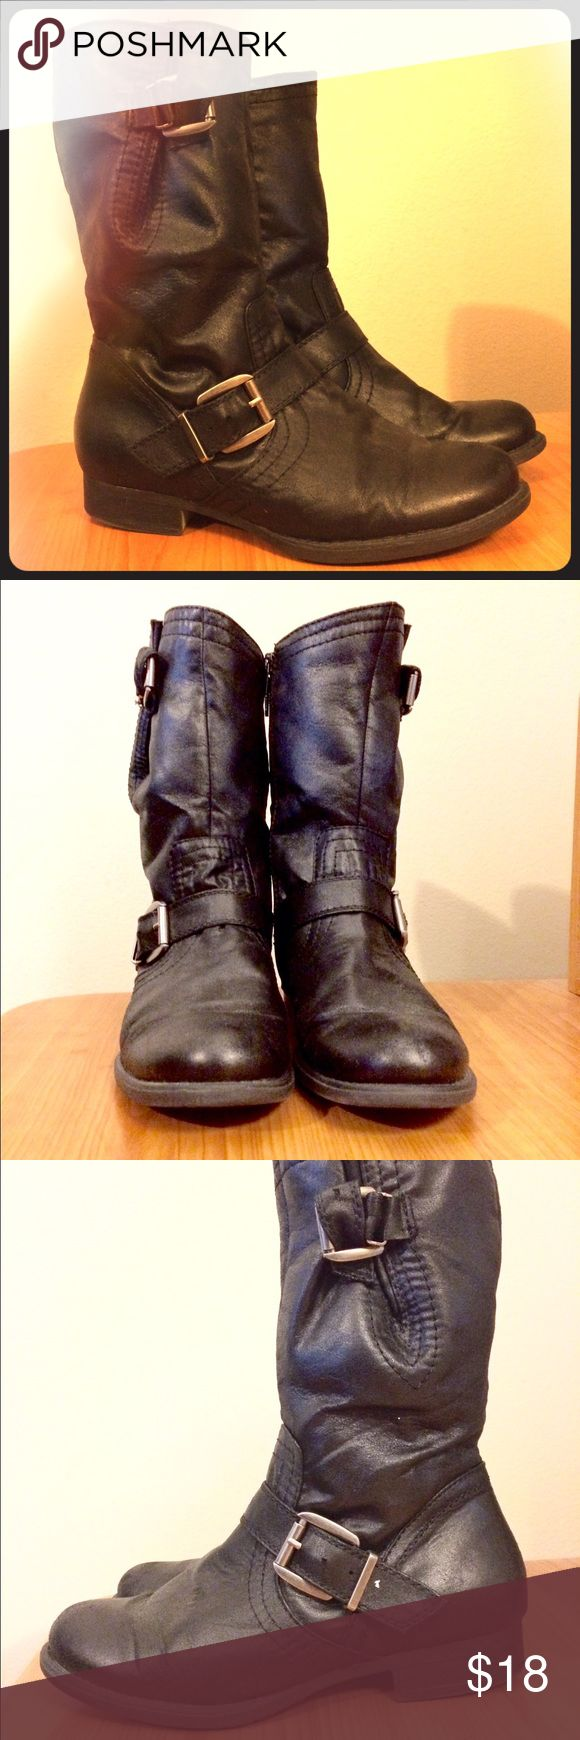 Black zip-up moto boots Incredibly cute and comfortable black moto boots by Yuu, size 7 1/2 :) Very reminiscent of Frye's Veronica short boot! soft man made material with inner zippers, low heels, and stylish buckle accents. Excellent nearly new condition - worn only a few times! ✨💜😊 Frye Shoes Combat & Moto Boots